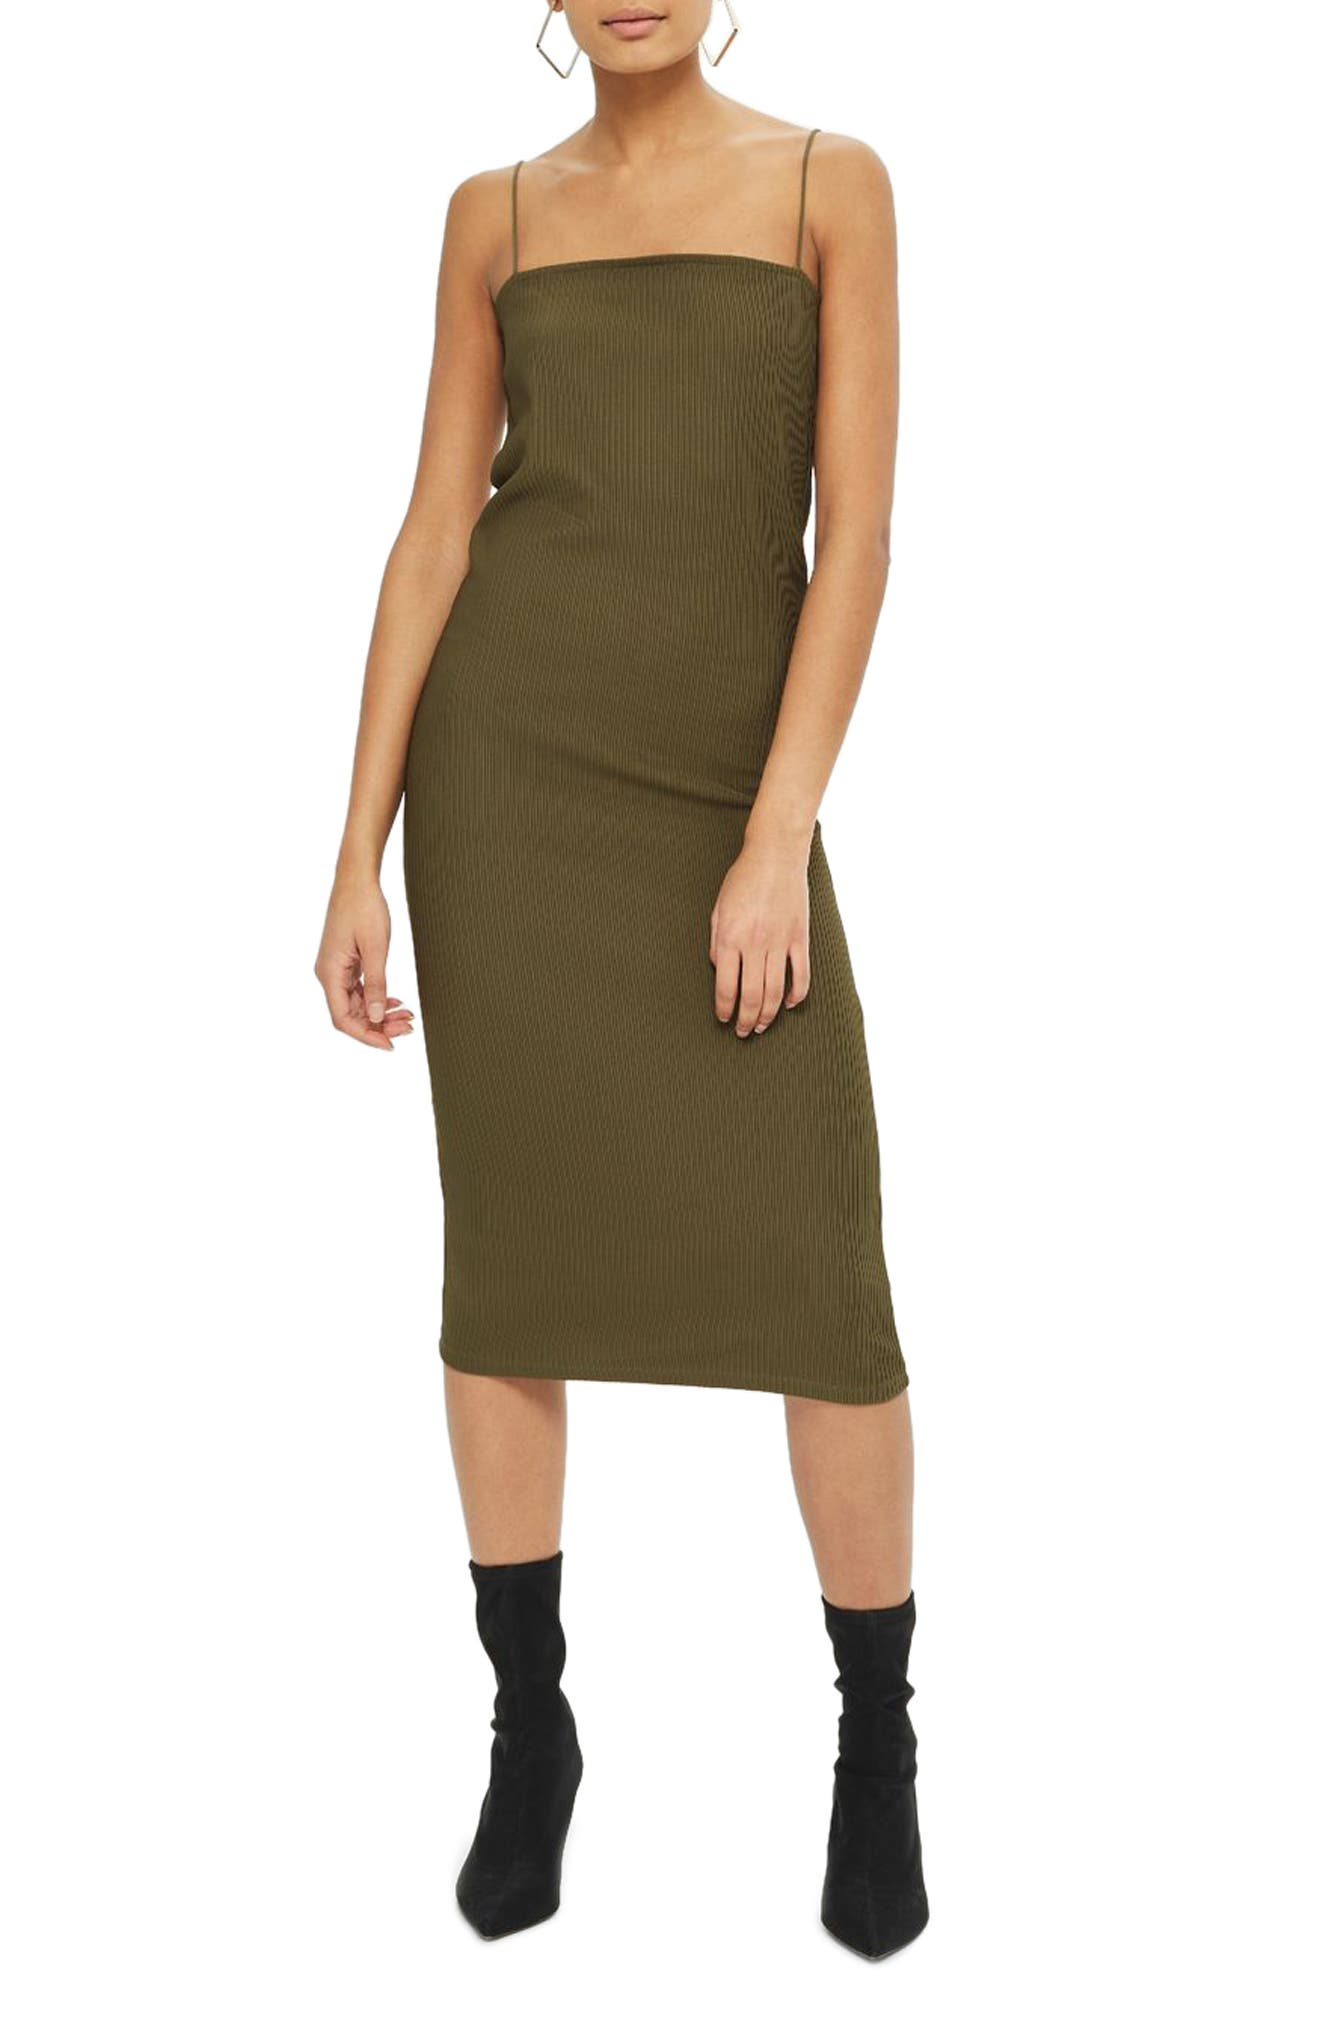 Alternate Image 1 Selected - Topshop Square Neck Body-Con Midi Dress